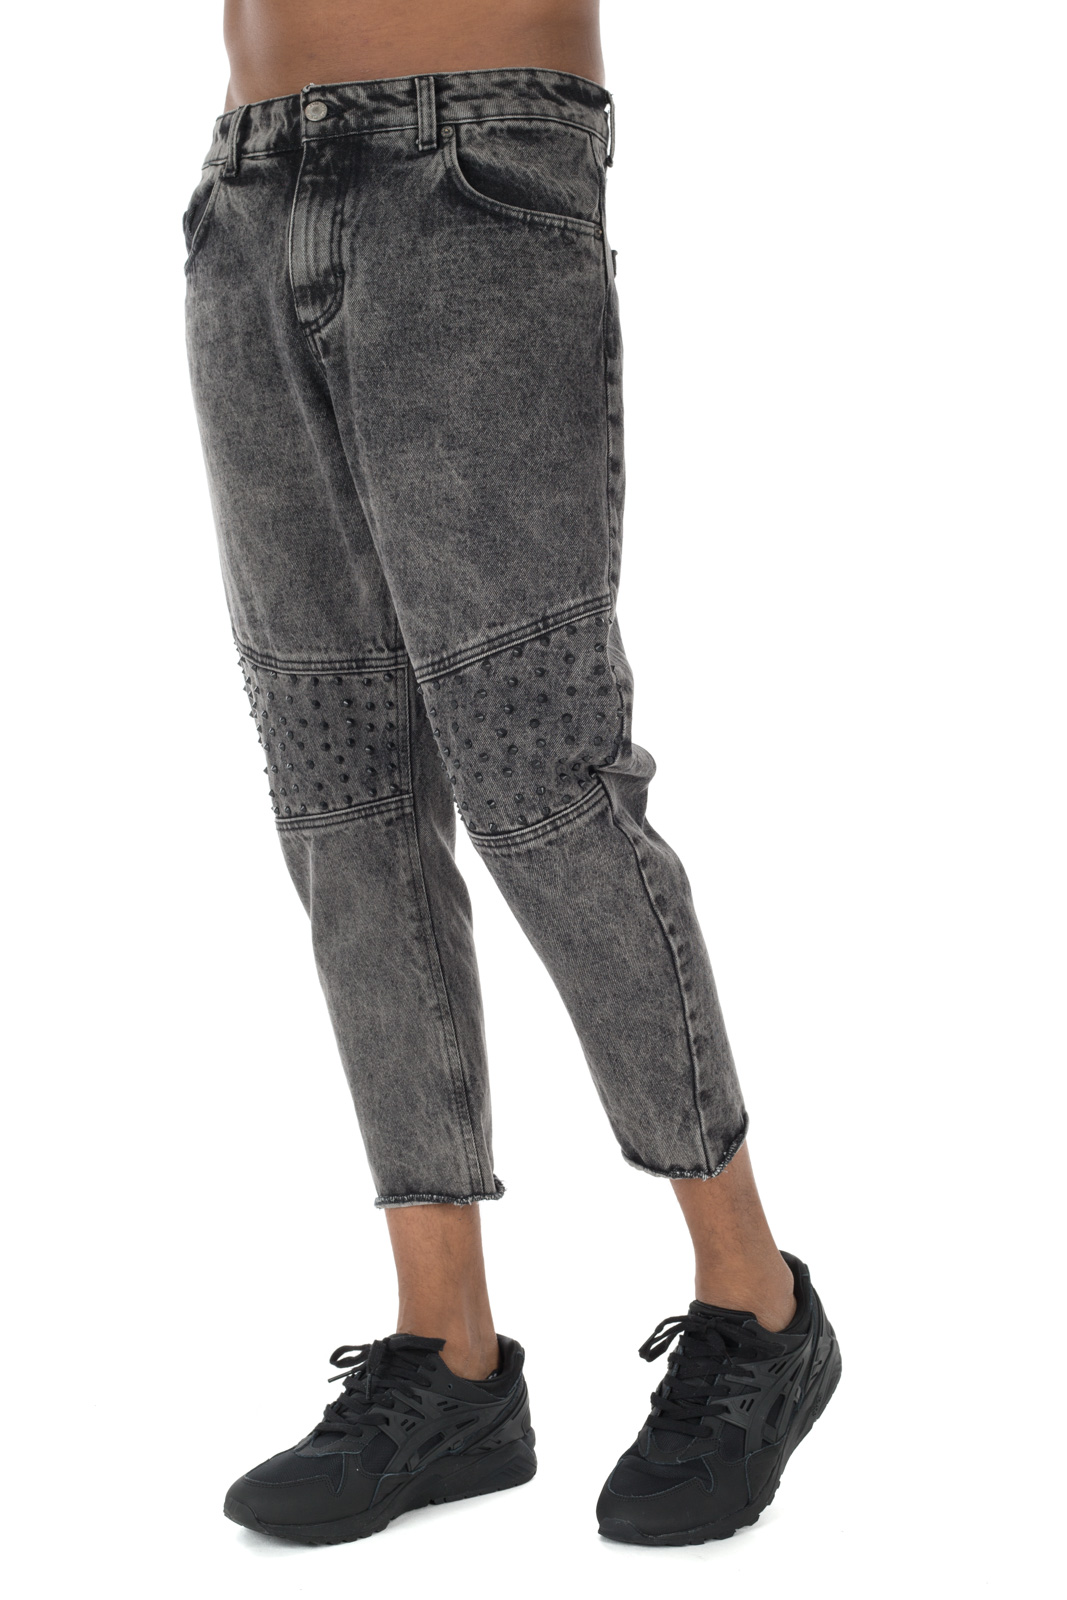 Berna - Gray jeans with studs on the knees